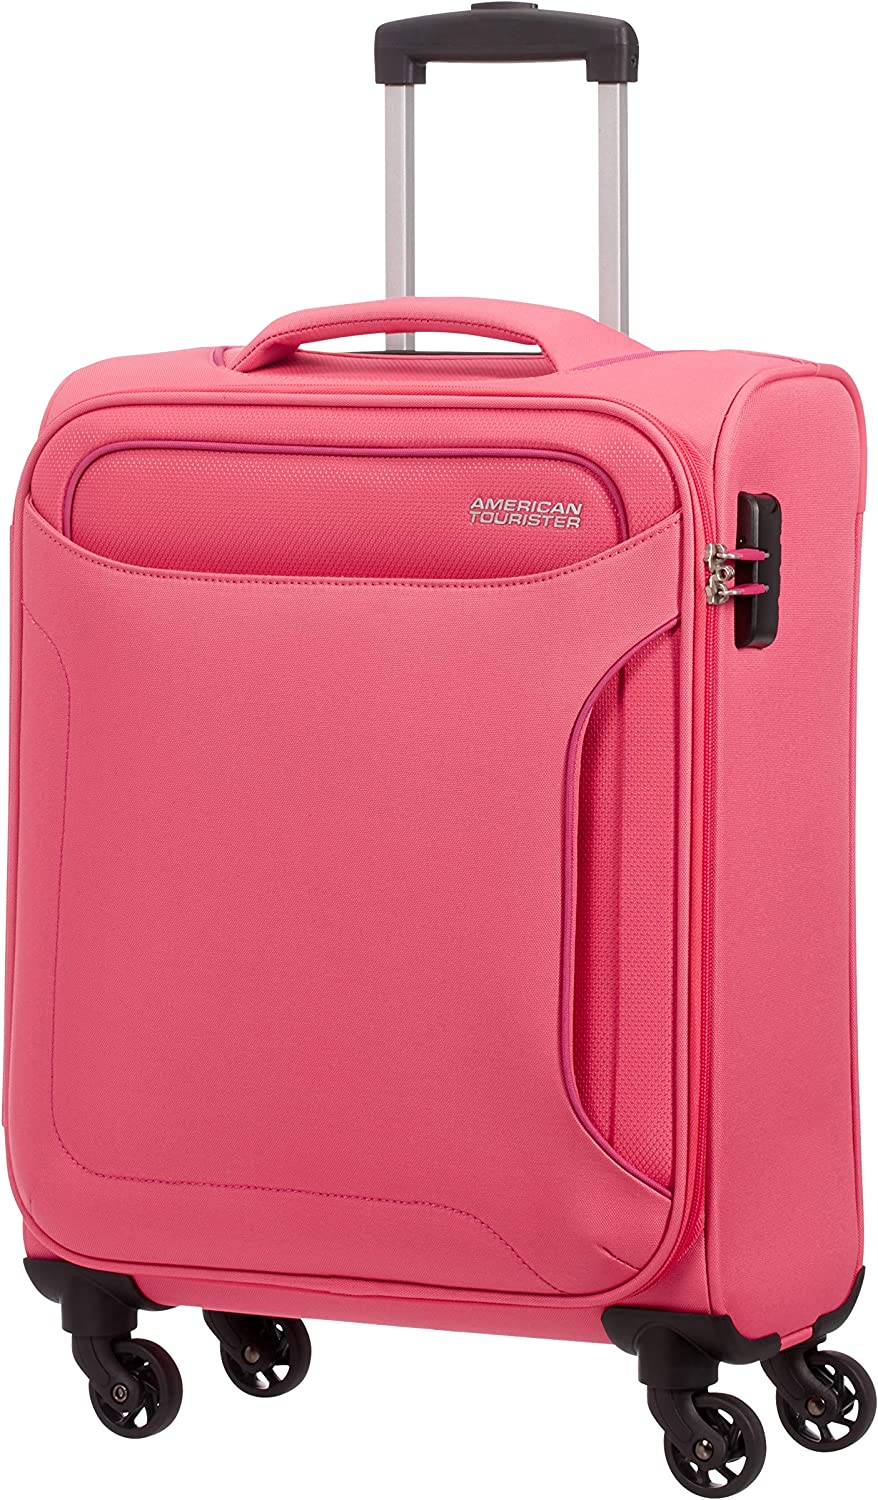 Bleu 55 cm Upright Bagage Cabine Navy 42 L American Tourister Holiday Heat